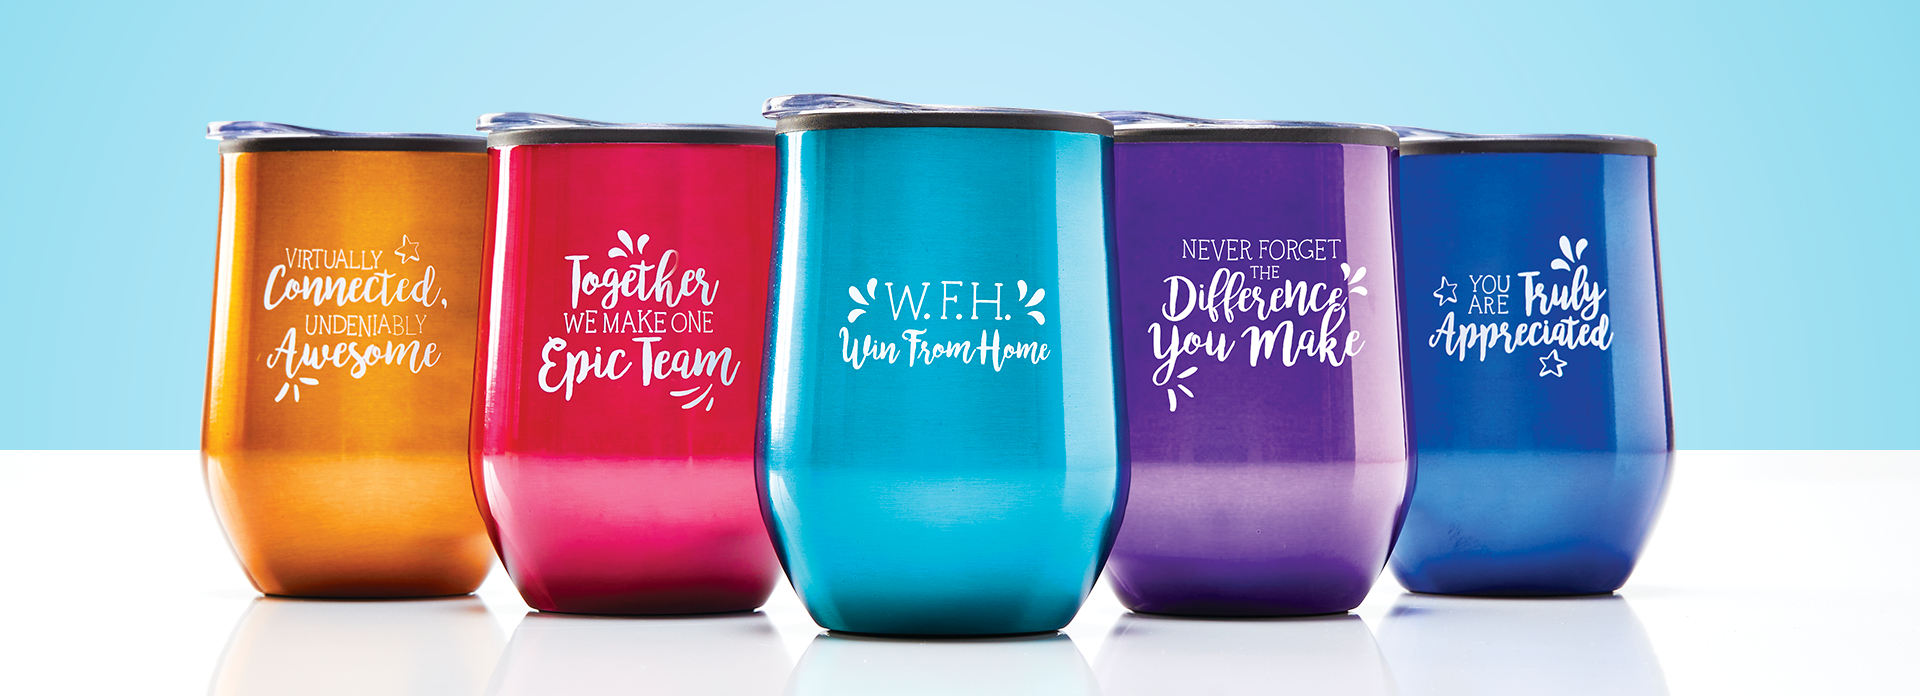 Drinkware for corporate gifts